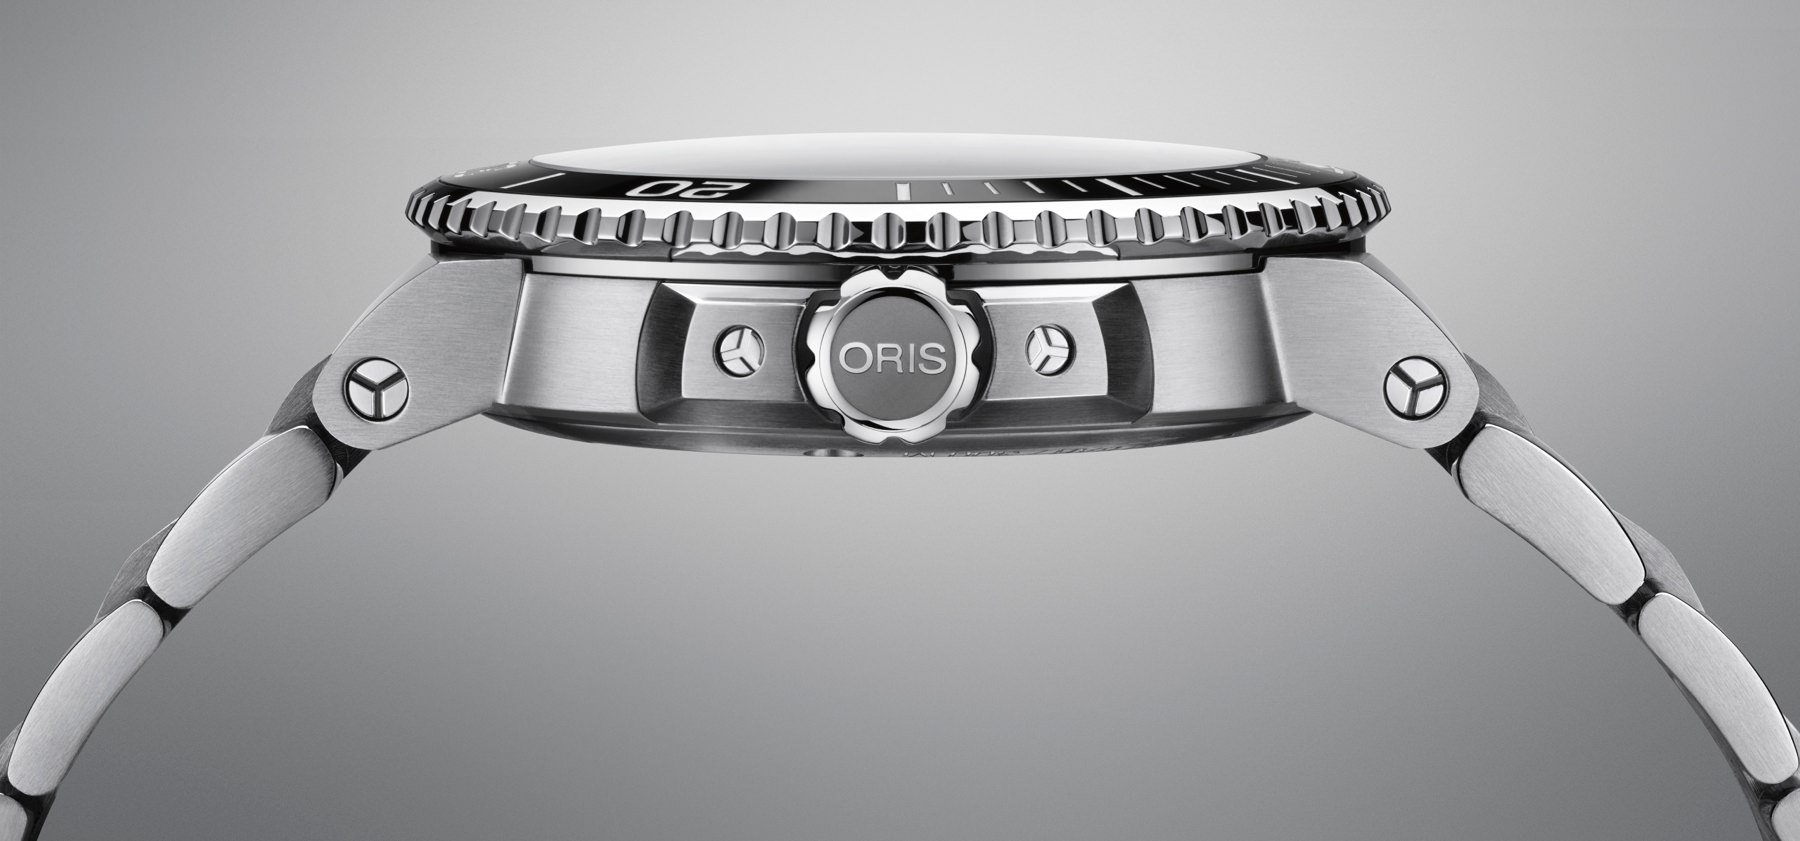 The best versatile dive watches from Oris